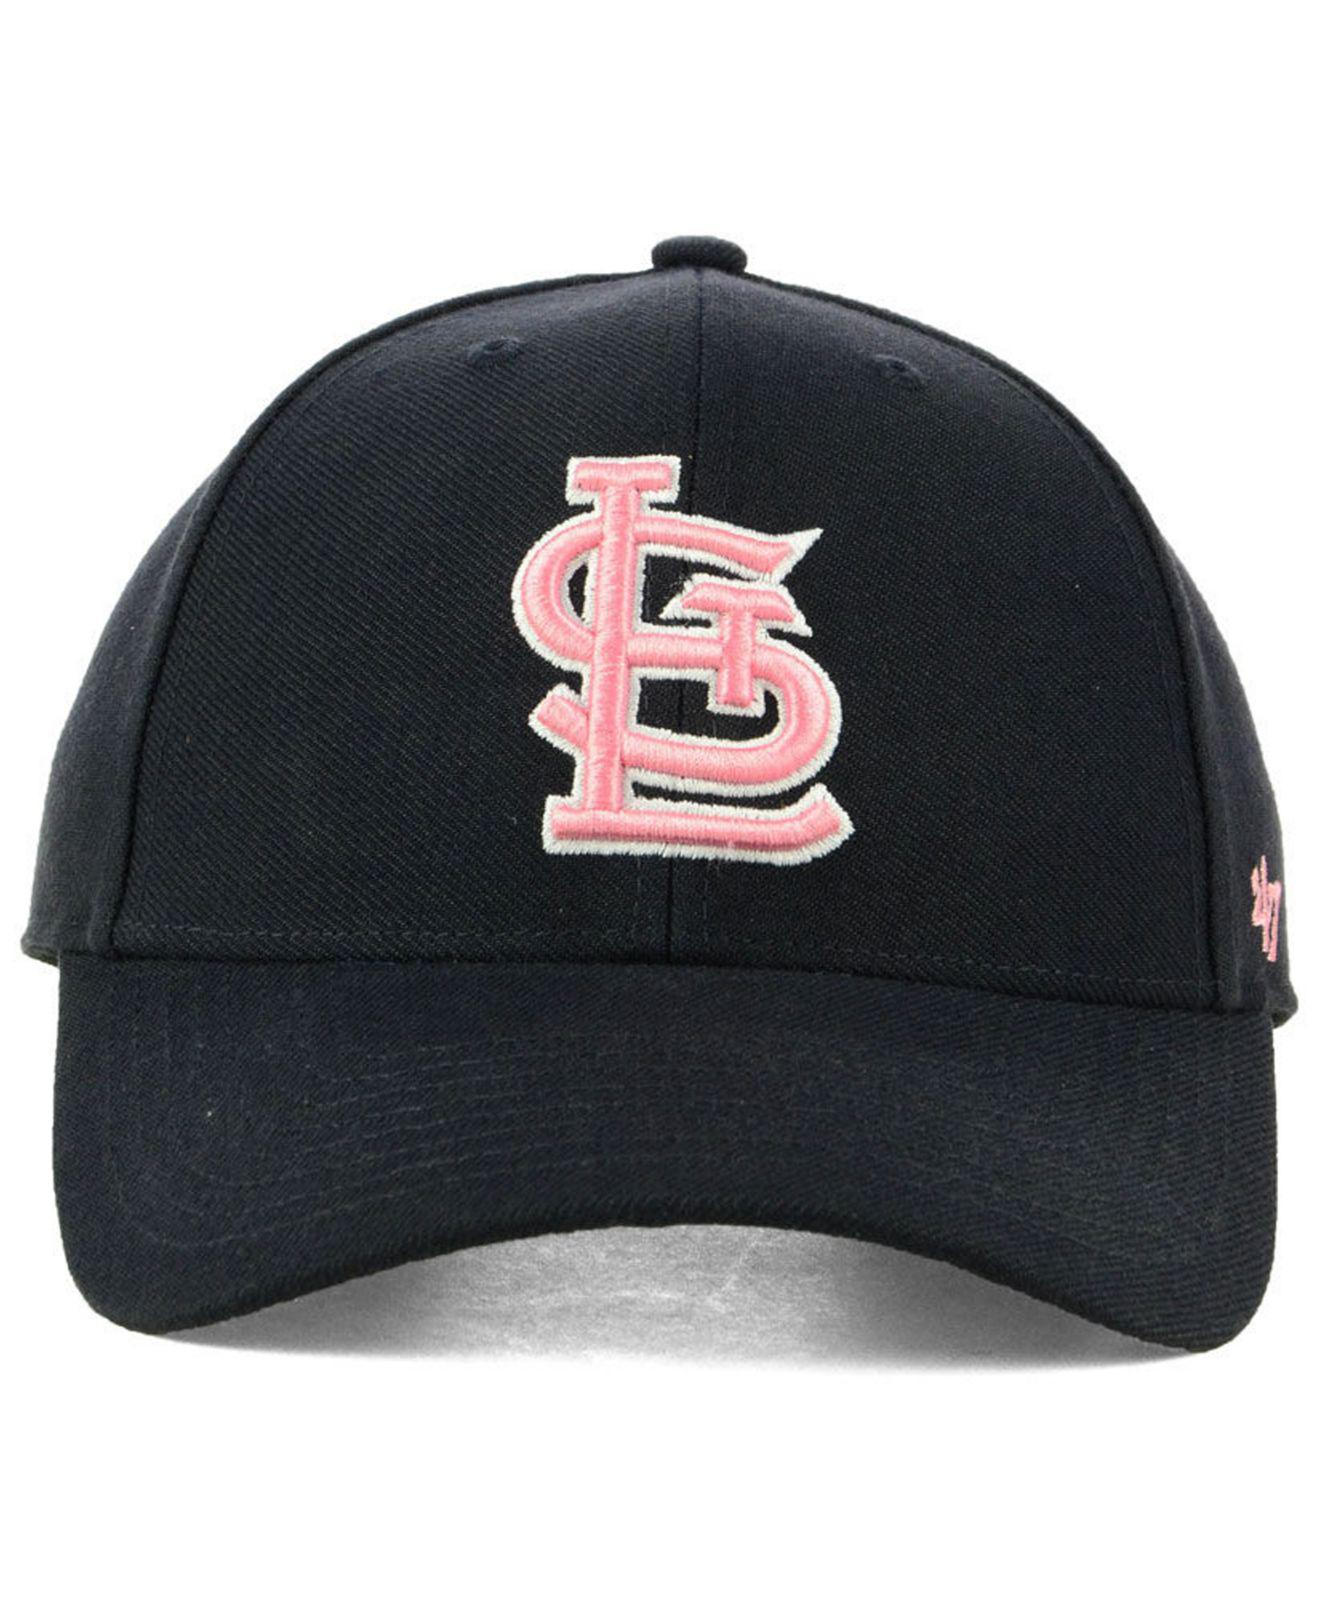 sale retailer 8f999 fcc4e real lyst 47 brand st. louis cardinals navy pink mvp cap in blue for men